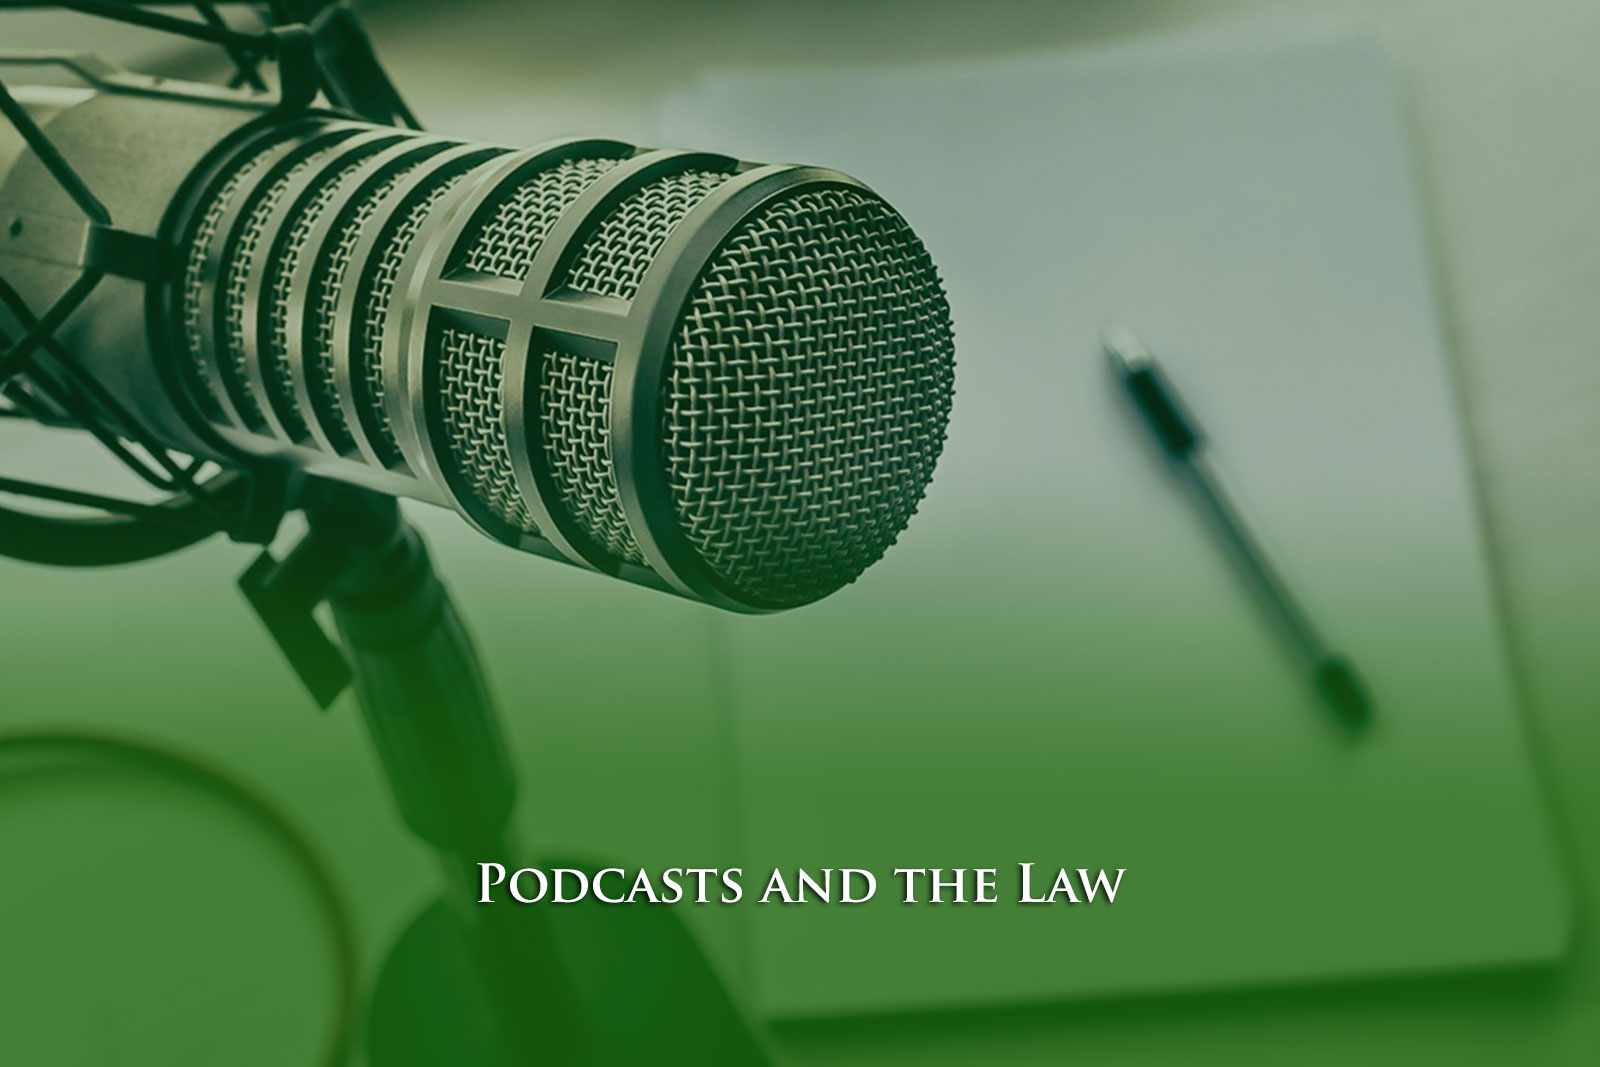 Podcasts and the Law